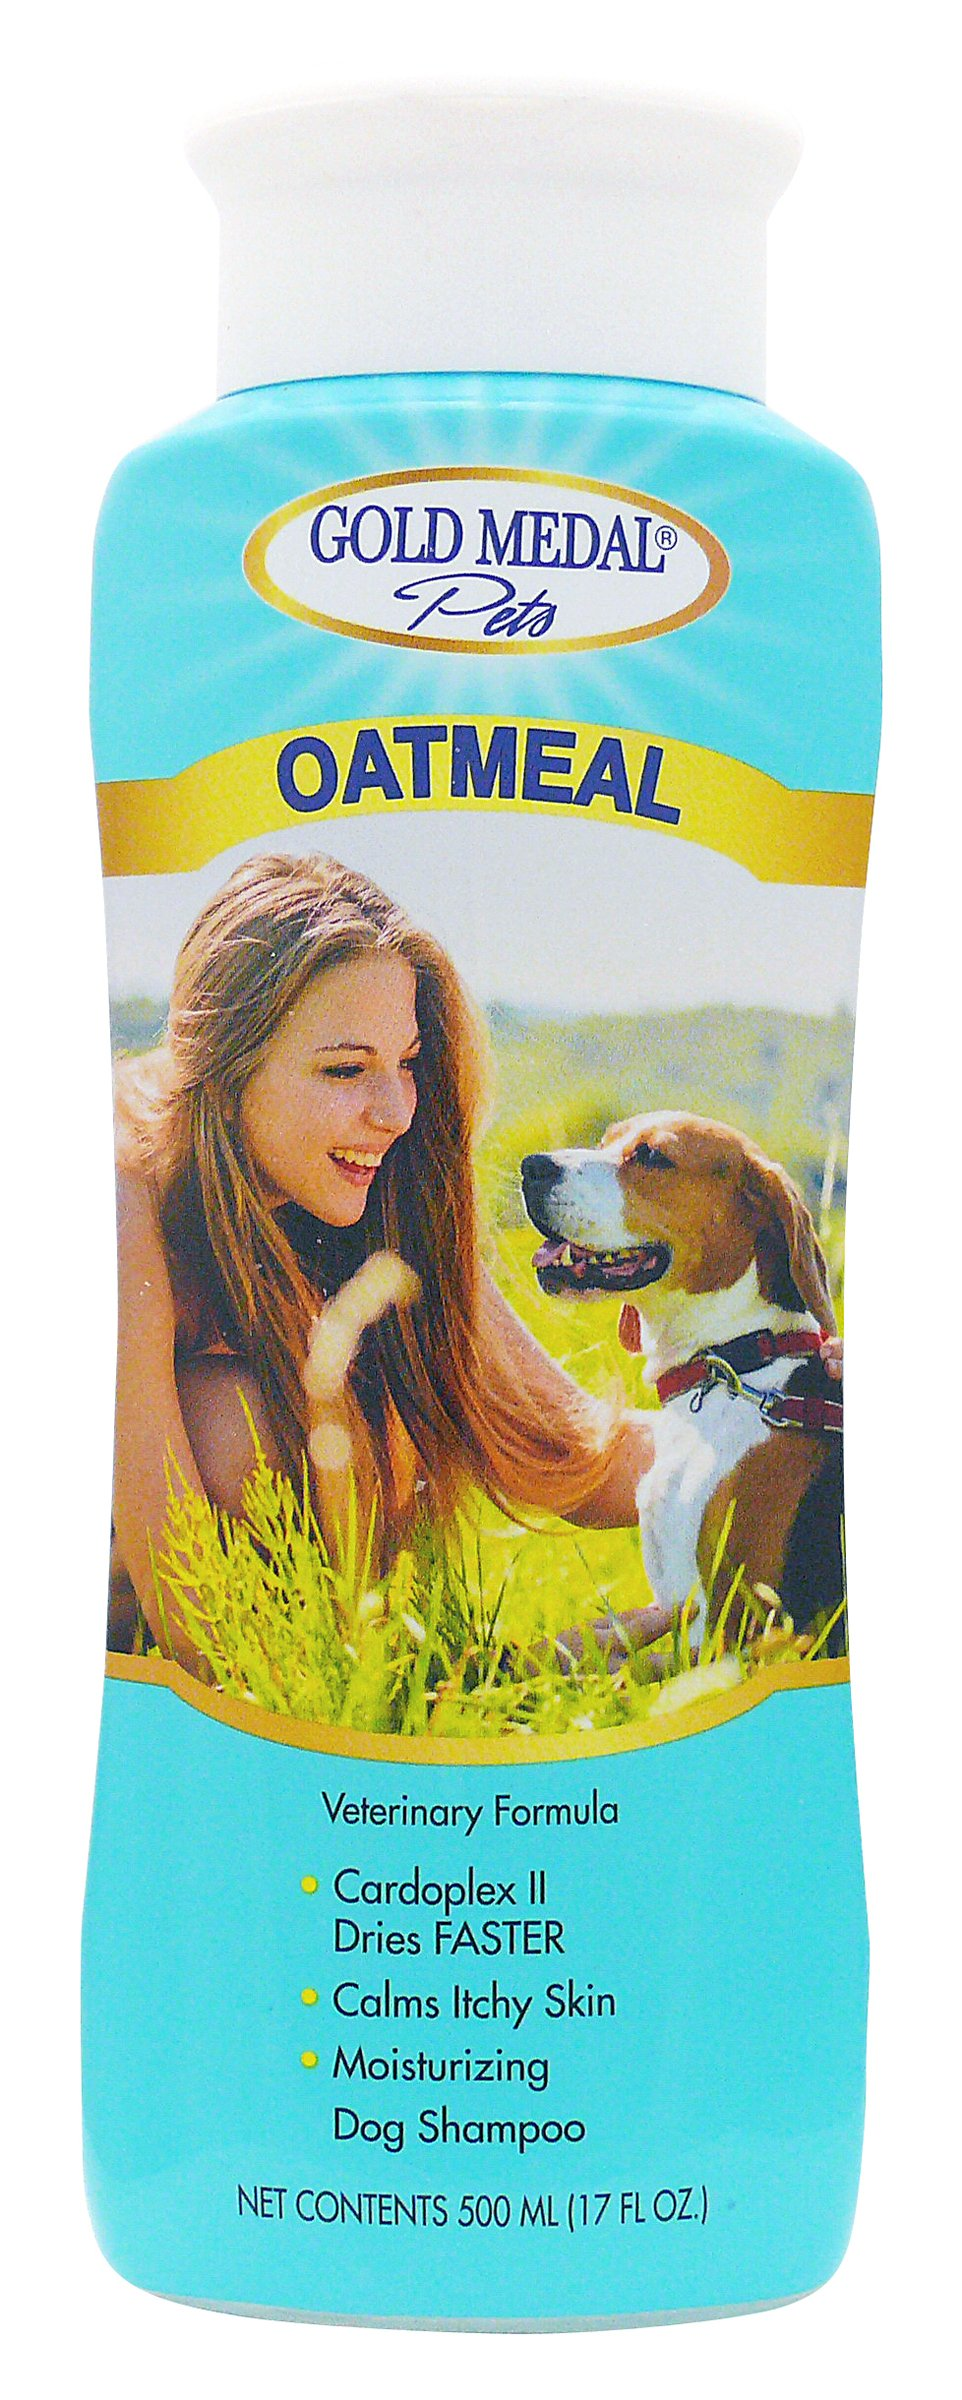 Gold Medal Pets Oatmeal Soothing Shampoo for Dogs, 17 oz.